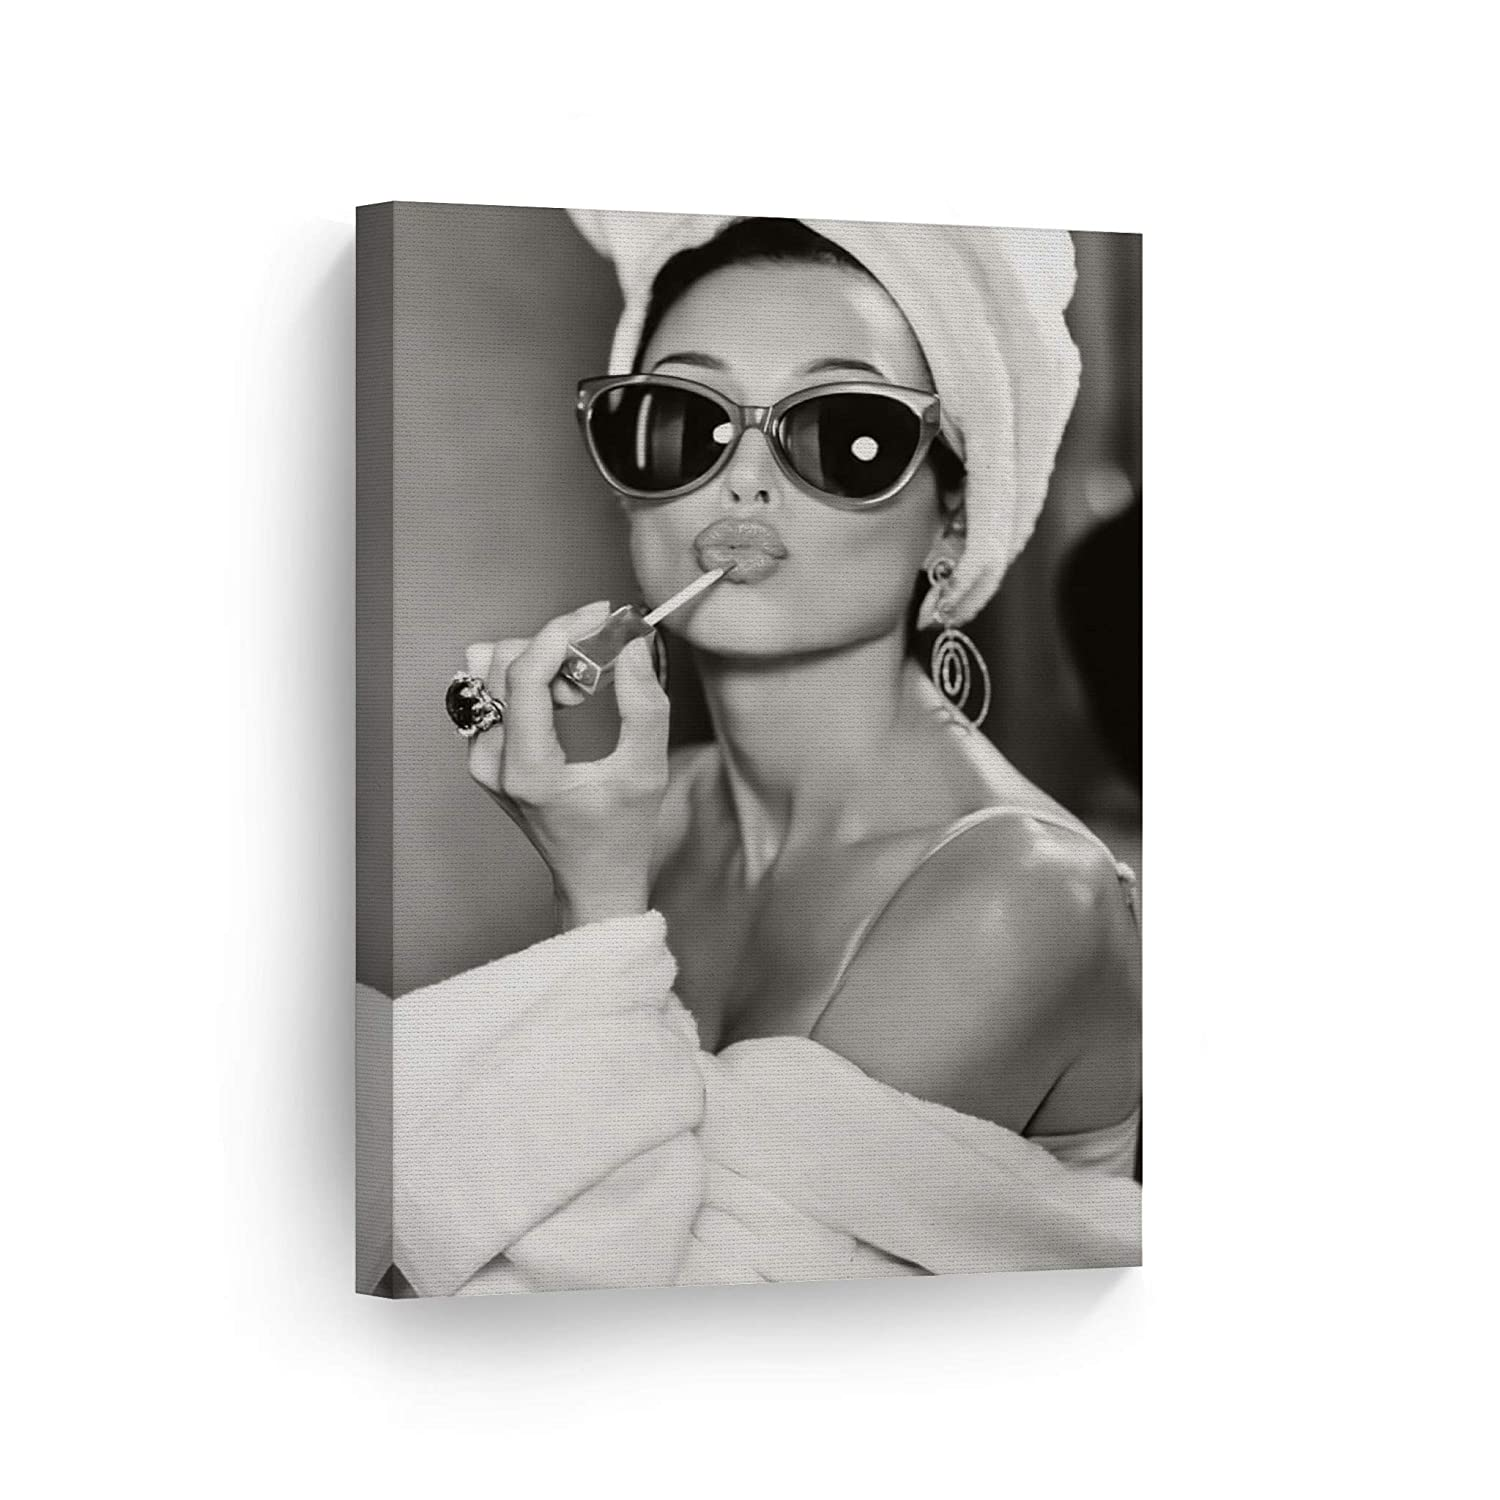 SmileArtDesign Audrey Hepburn Wall Art Makeup Canvas Print Iconic Pop Art Pretty Beauty Black and White Home Decor Artwork Gallery Stretched and Ready to Hang -%100 Handmade in The USA - 36x24